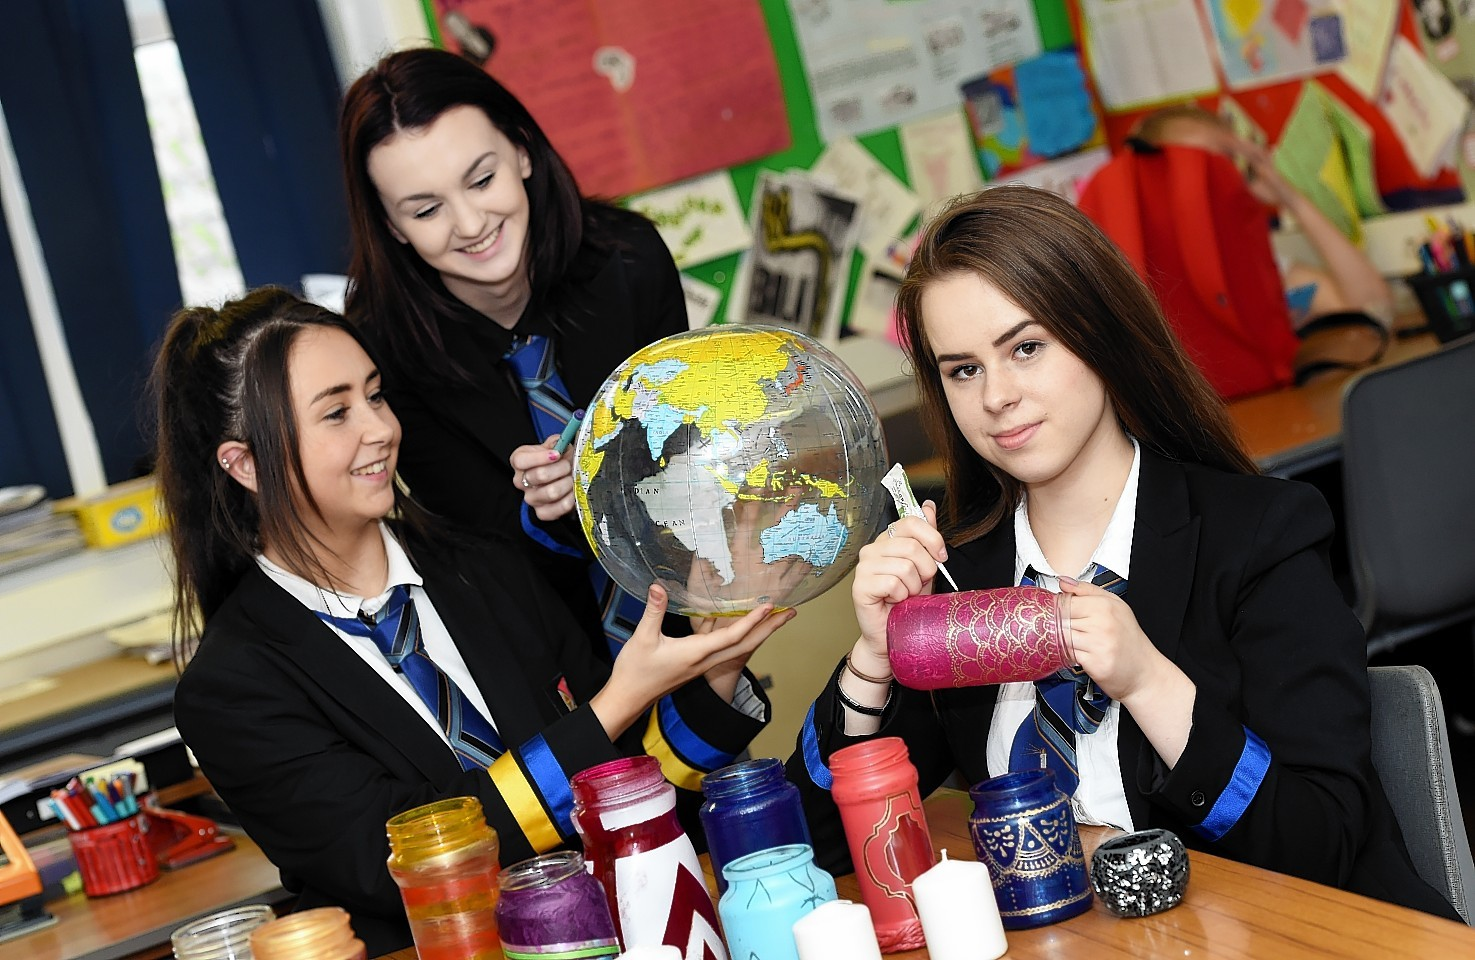 (from left) Torry Academy pupils Natalie Clark, Rachael Robertson and Kaja Malinowska working on lanterns for a Moroccan themed night to raise funds for the school's first World Challenge.